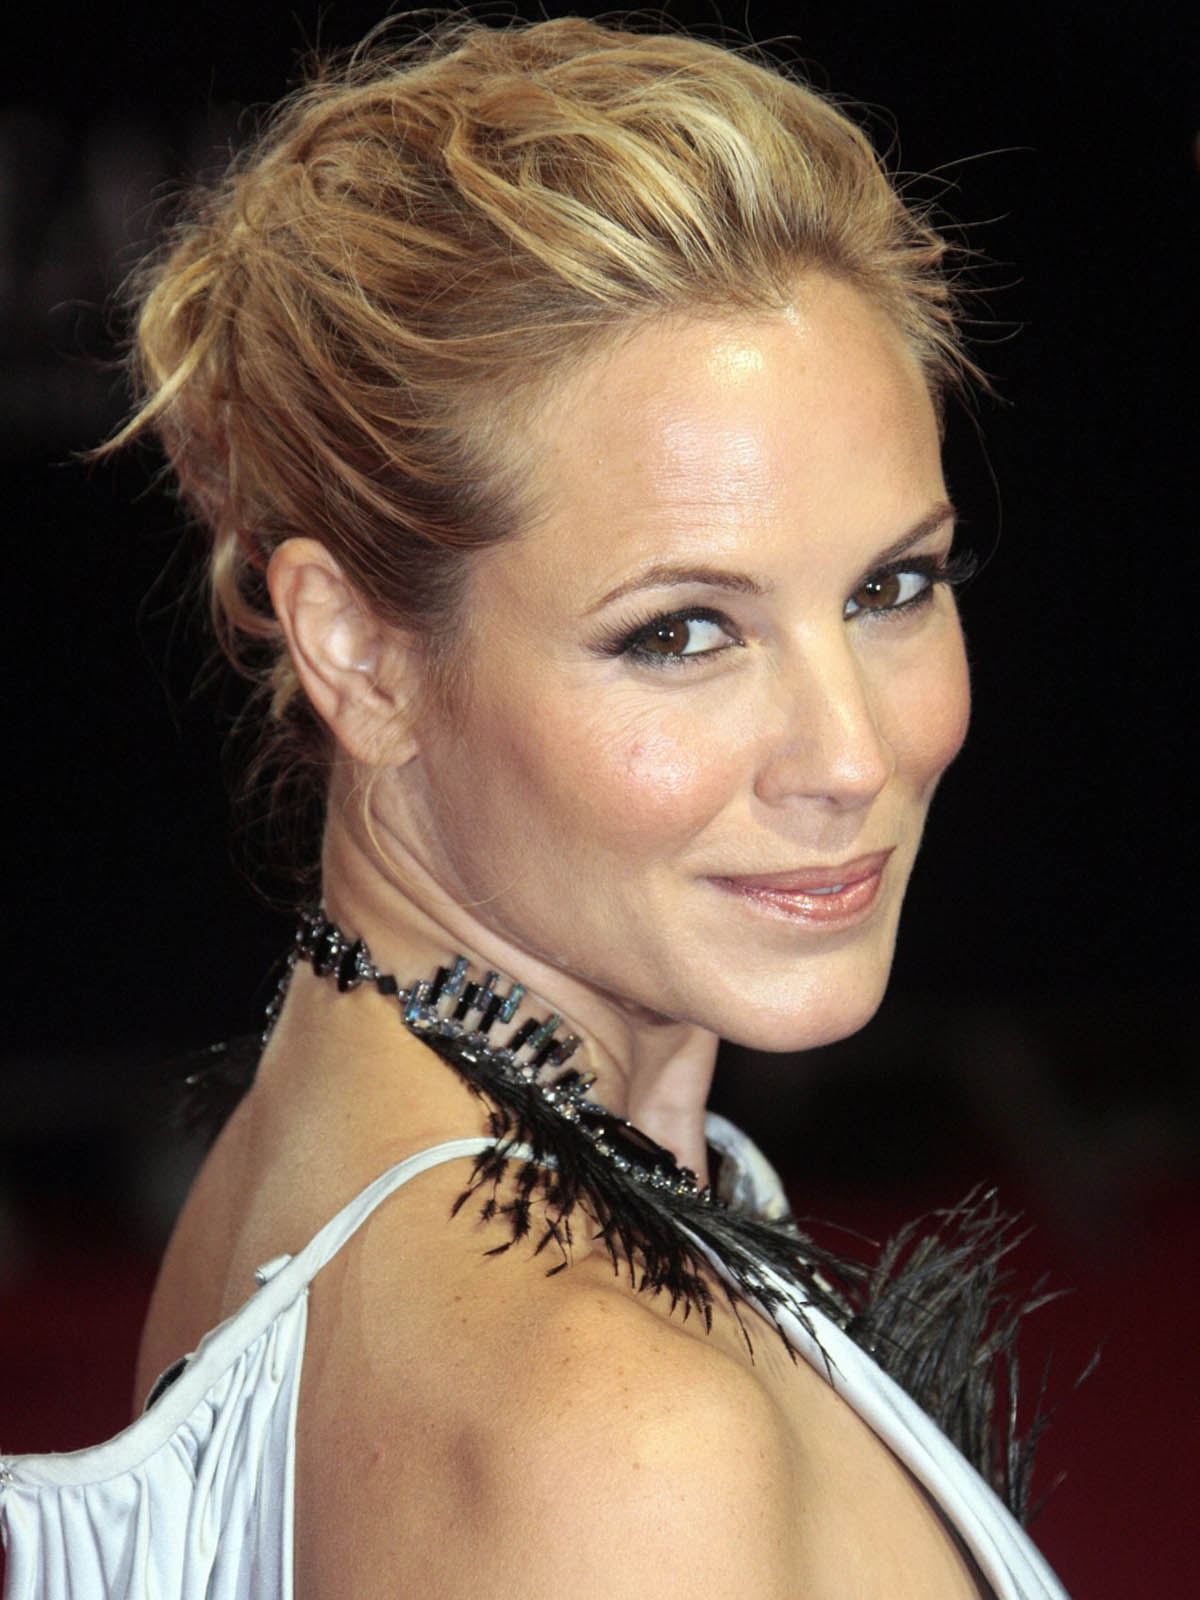 Maria Bello Image Gallery, Maria Bello Pics, Maria Bello Backgrounds ...